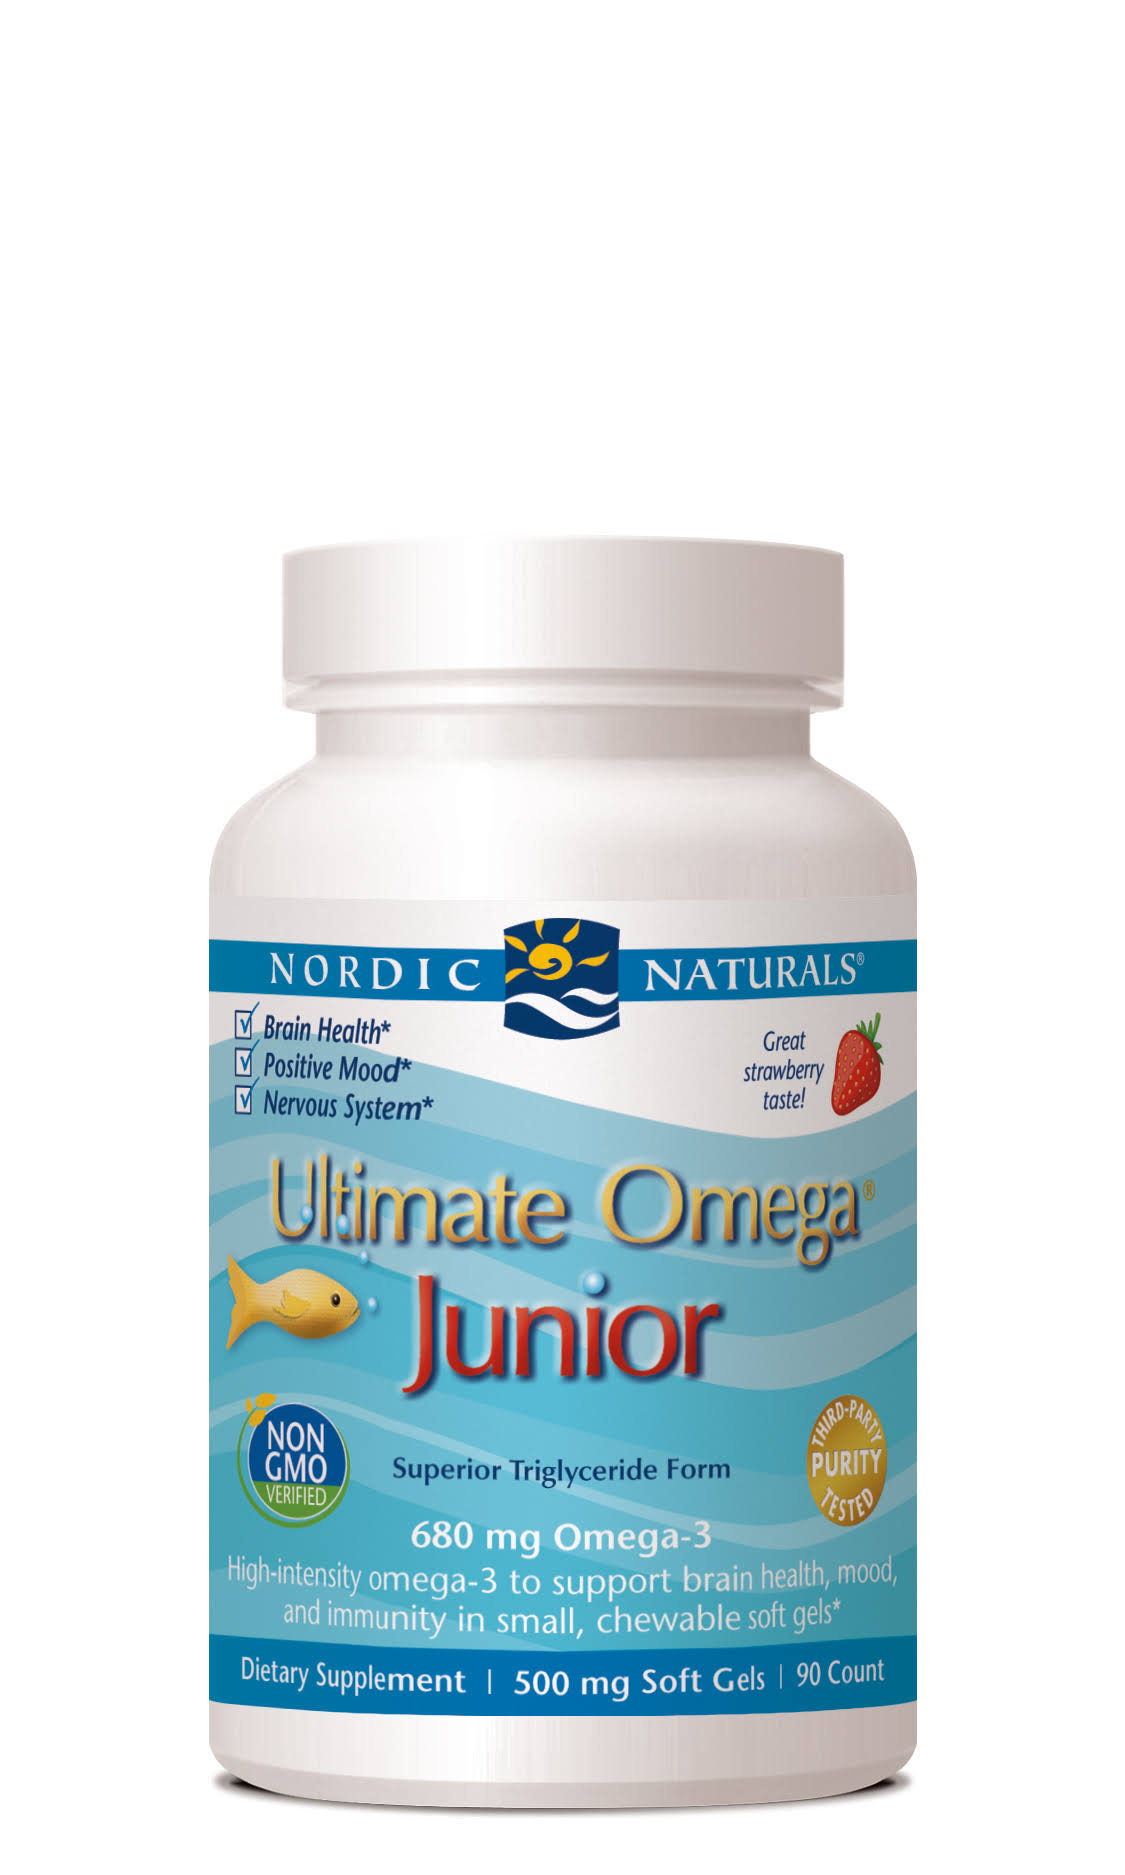 Nordic Naturals Ultimate Omega Junior - 500mg, 90 ct